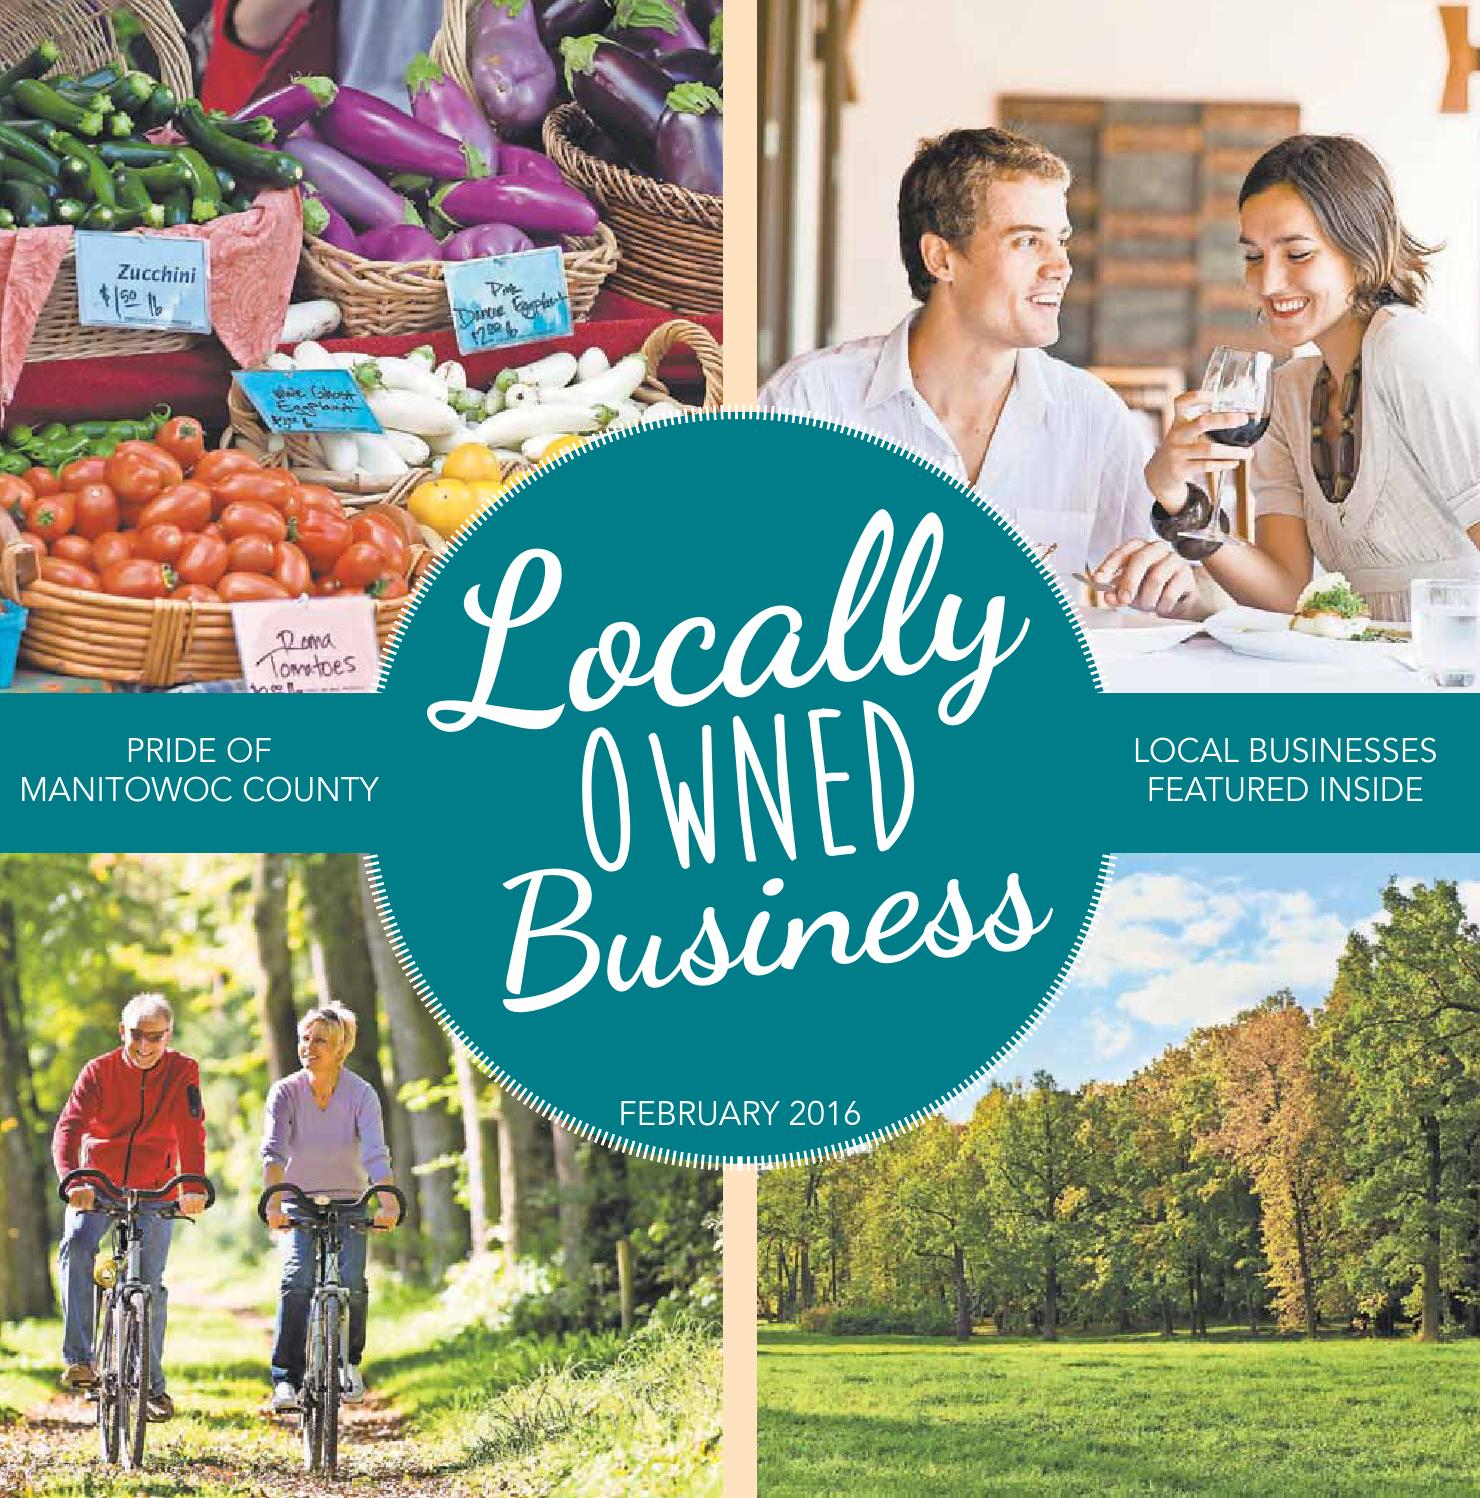 Manitowoc Locally Owned Business 2016 By Gannett Wisconsin Media Issuu